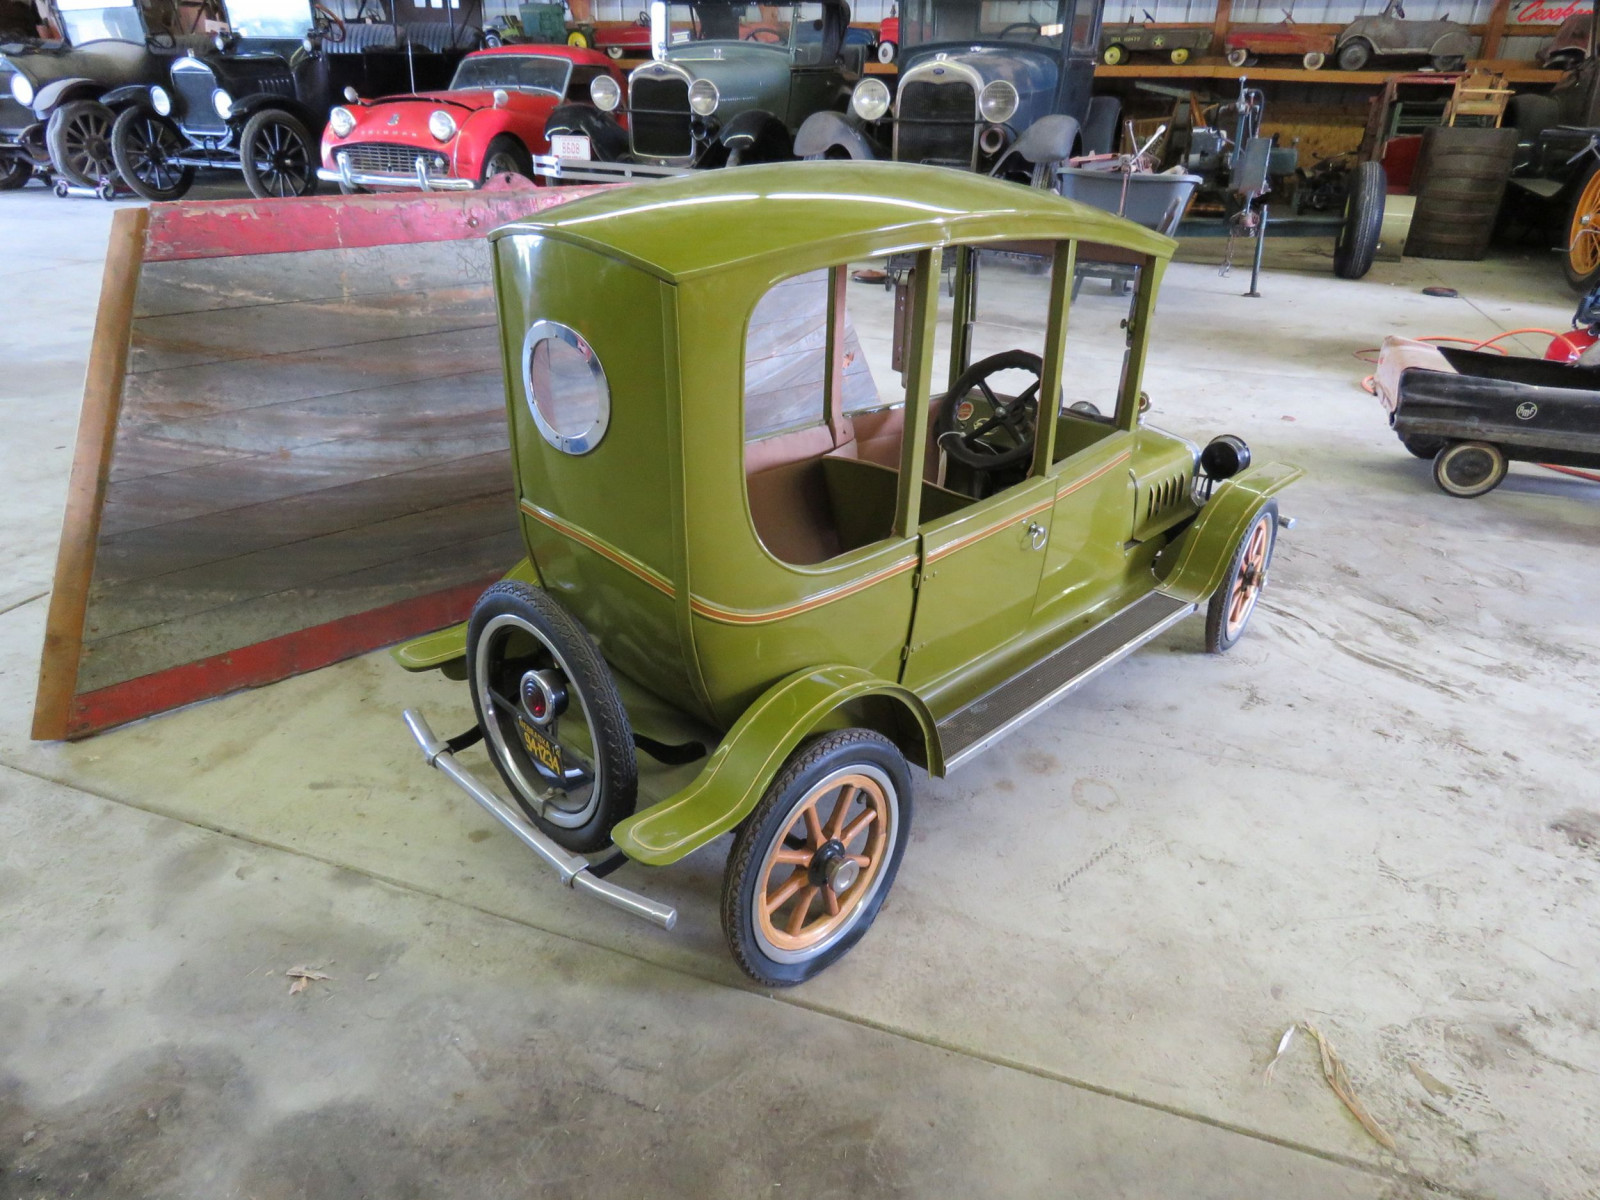 Ford Model T Center-Door Pedal Car - Image 6